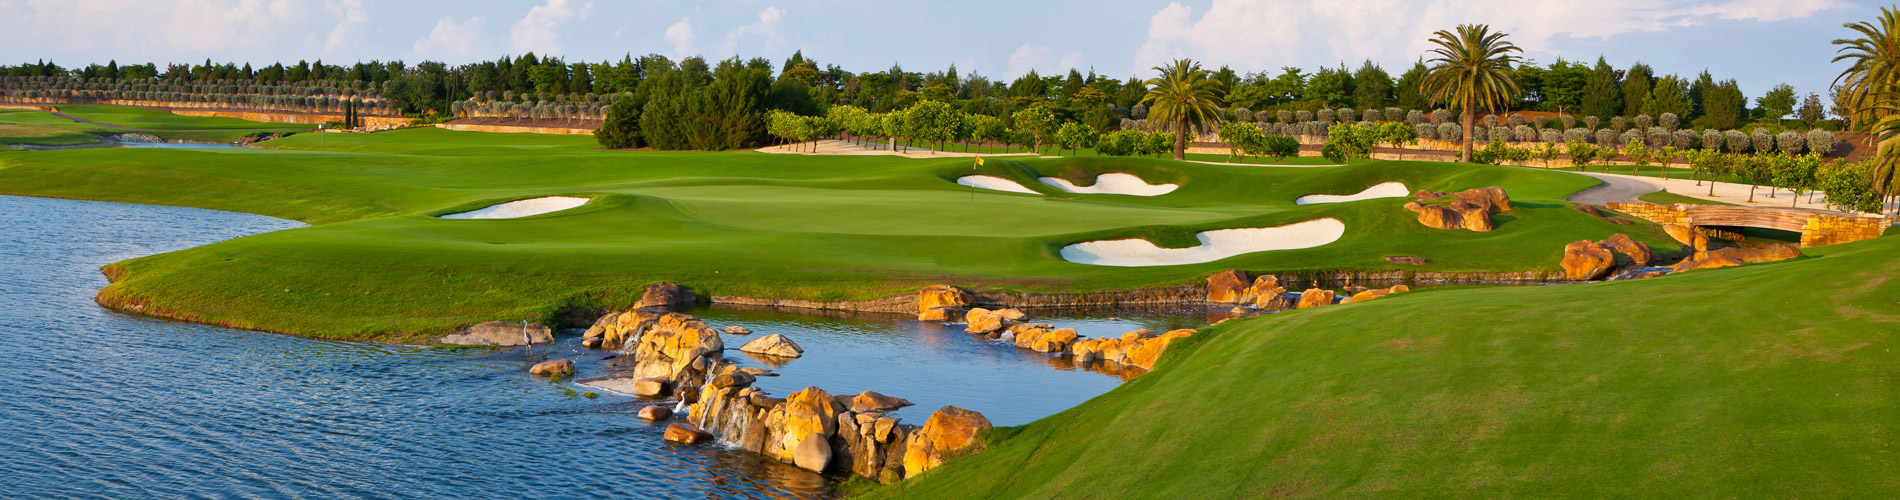 Overview of golf course named Talis Park Golf Club